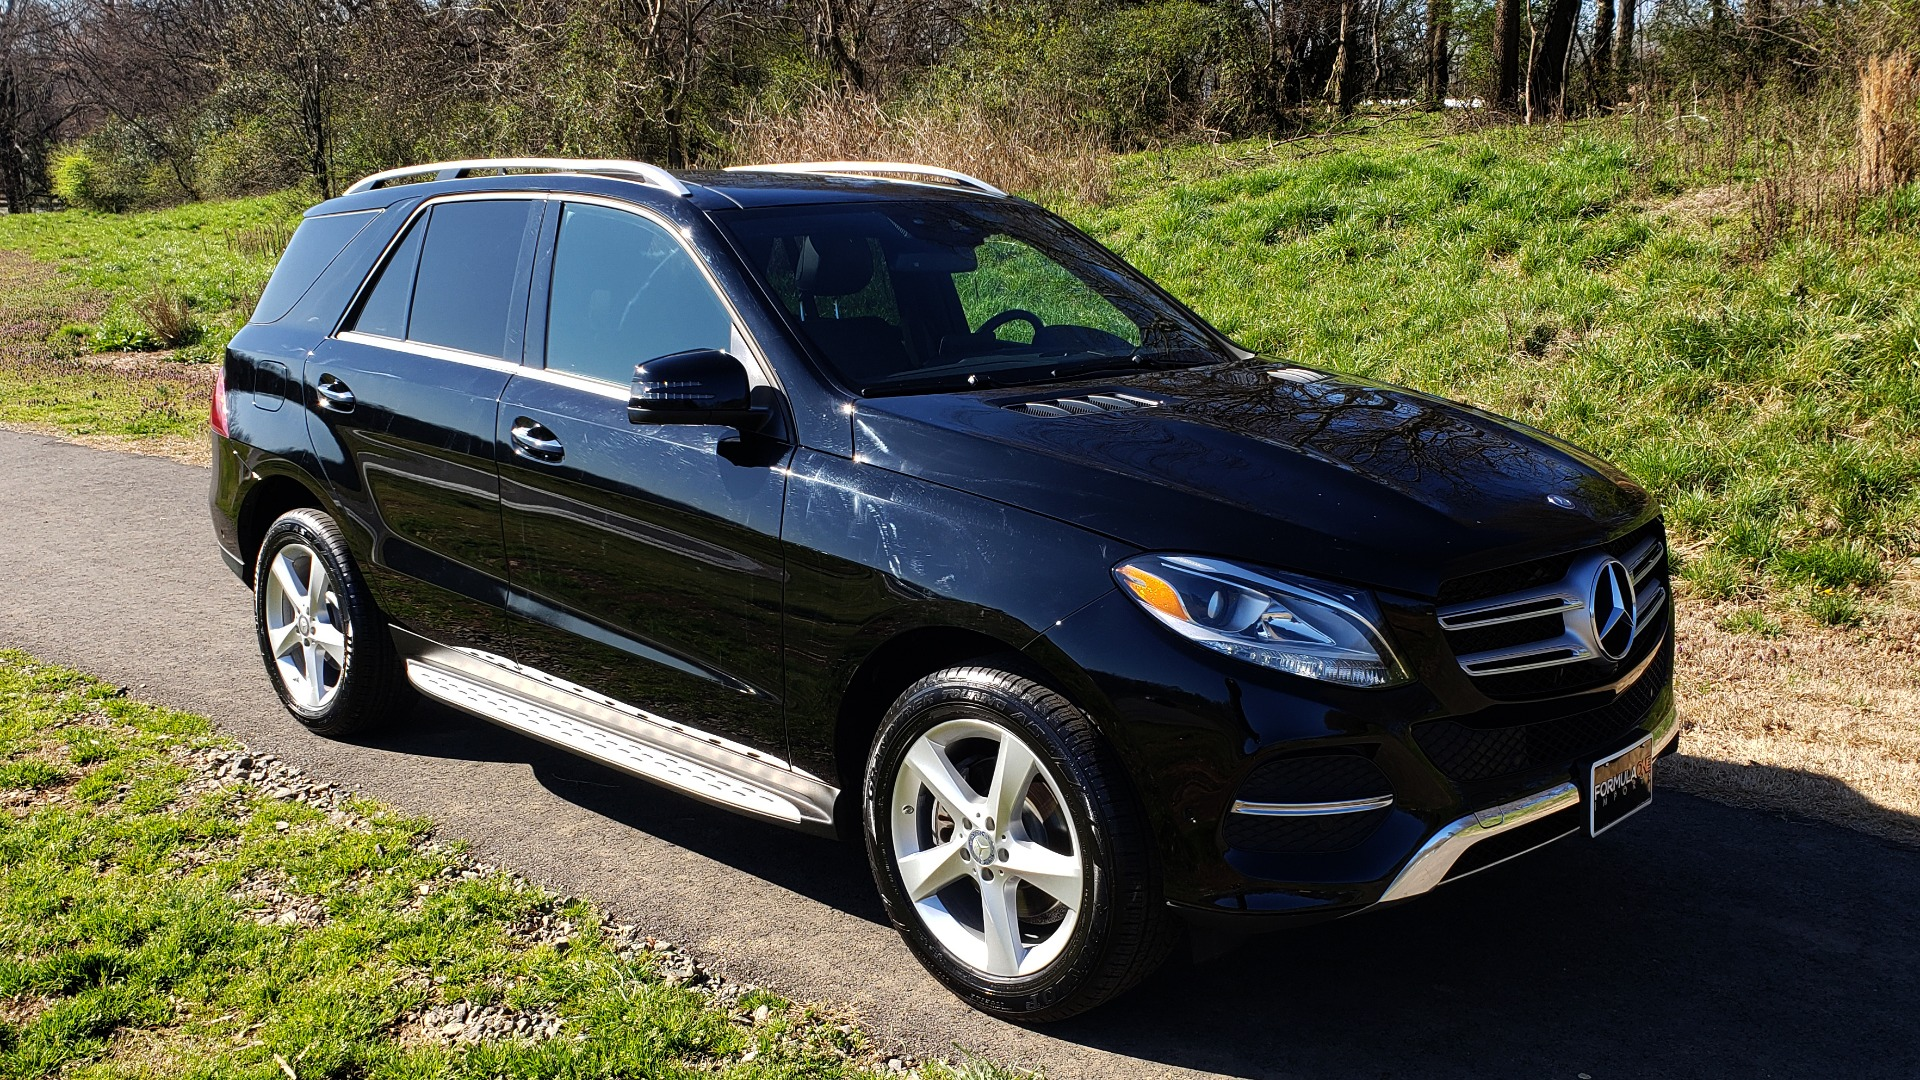 Used 2017 Mercedes-Benz GLE 350 4MATIC PREMIUM / NAV / SUNROOF / REARVIEW / PARK ASST for sale Sold at Formula Imports in Charlotte NC 28227 4